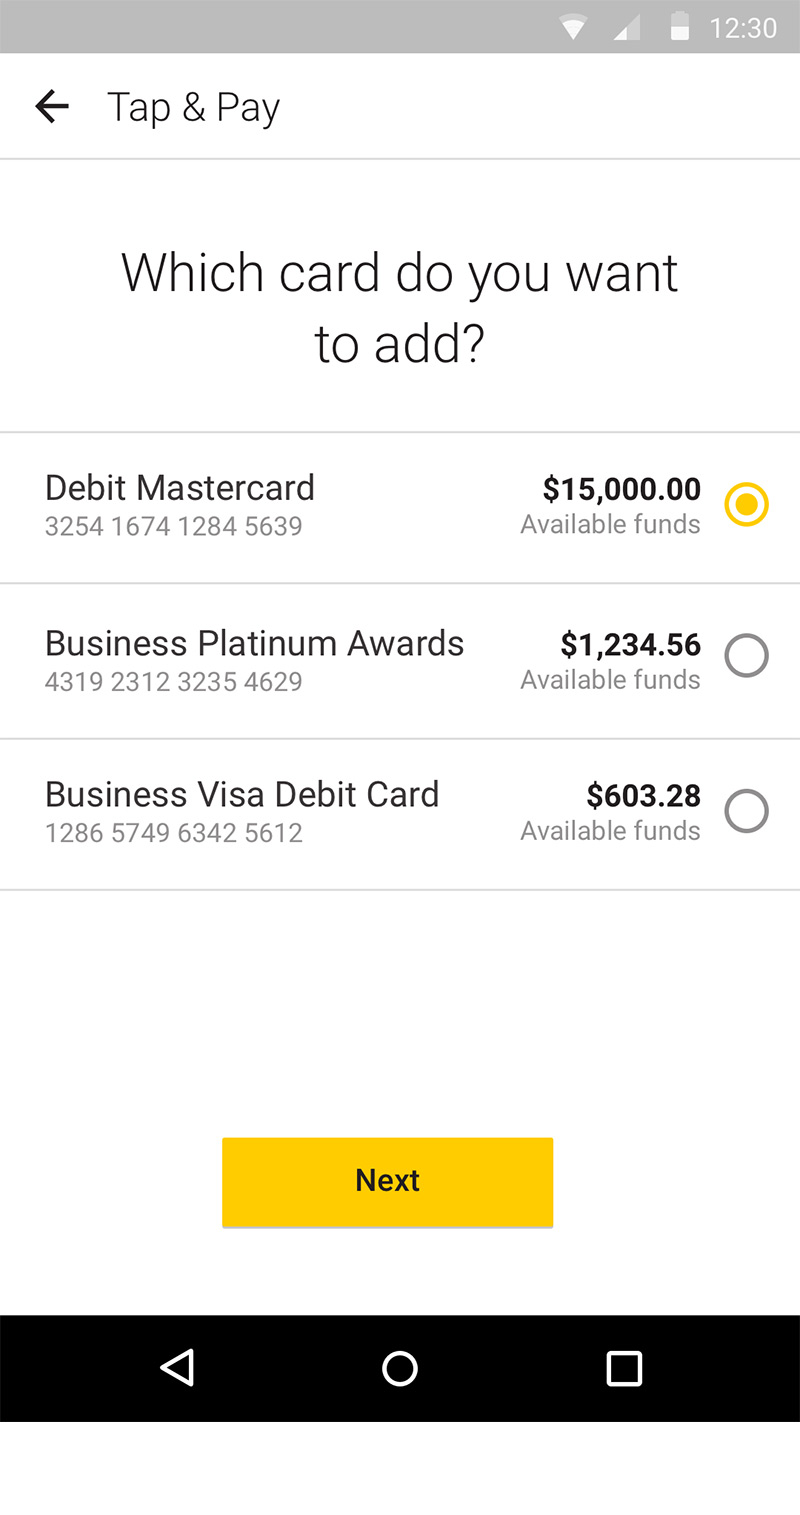 screen: CommBank app Tap & Pay - choosing linked card (Debit Mastercard is selected)